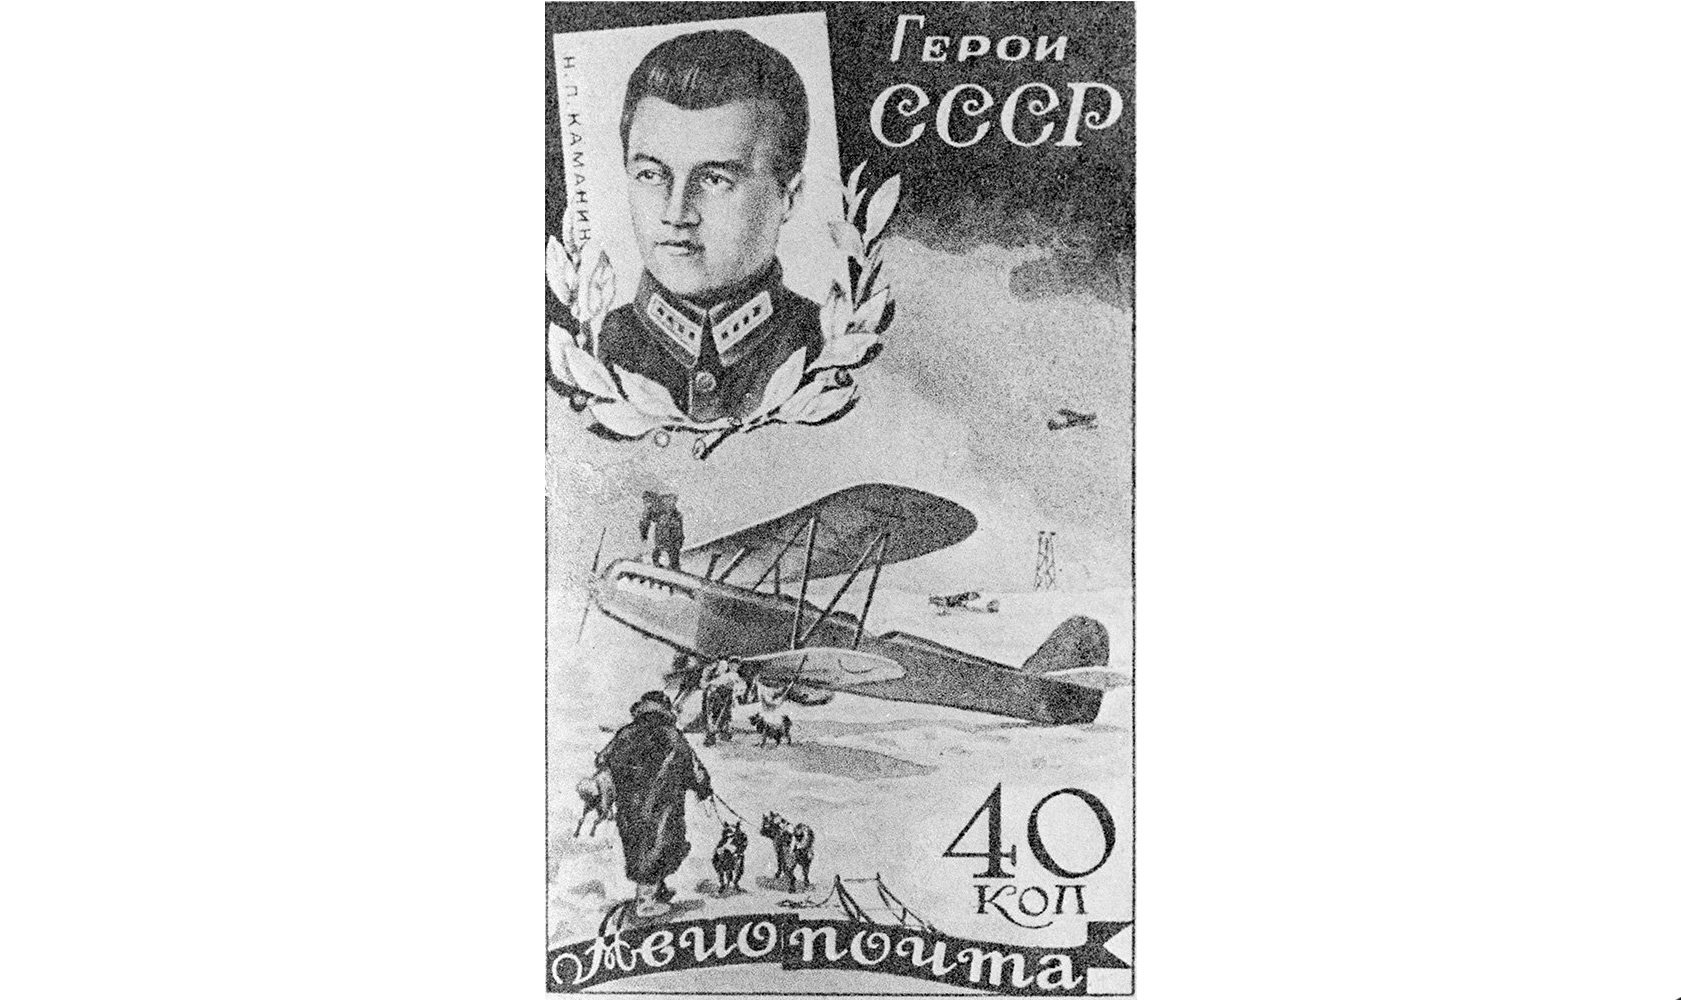 A 1935 Soviet postage stamp with a portrait of the Hero of the Soviet Union, pilot Nikolai Kamanin